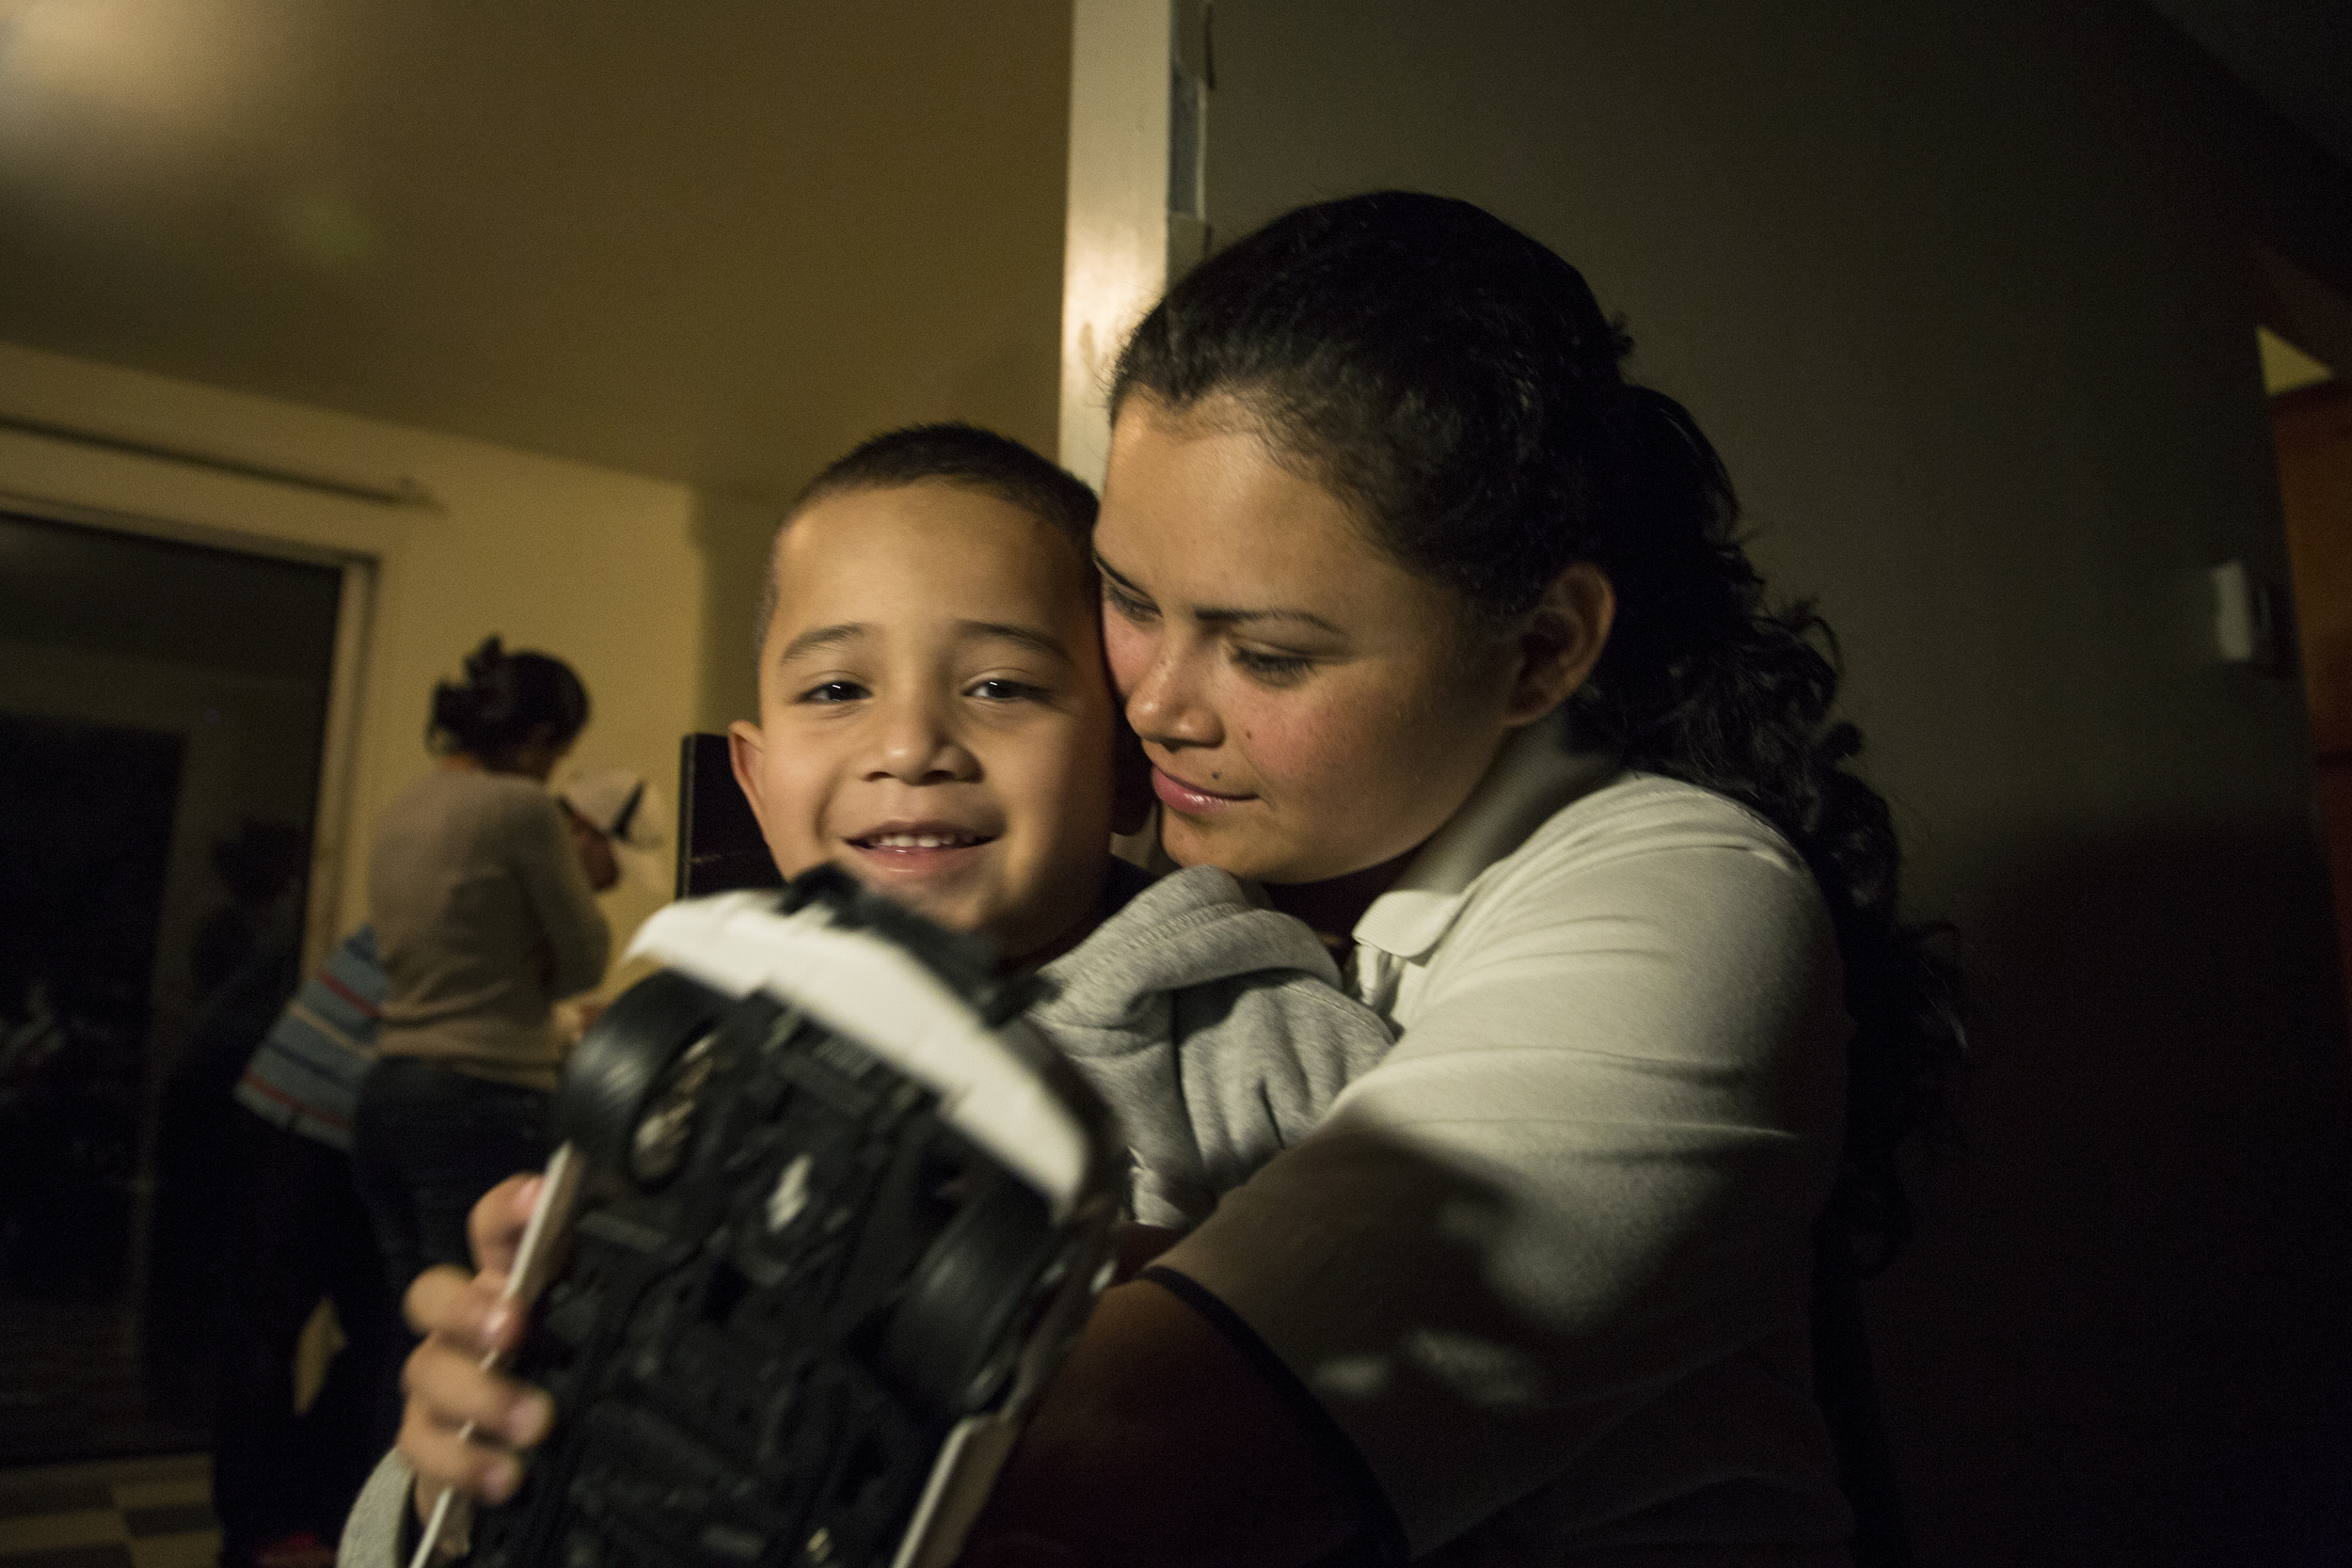 Cristel holds her son, Christopher (4) two nights before she leaves Eugene to represent them in court. The two traveled from Honduras in the summer of 2014 and crossed the U.S. border to reunite with family members in Oregon. Without legal representation, it is likely they will be deported.